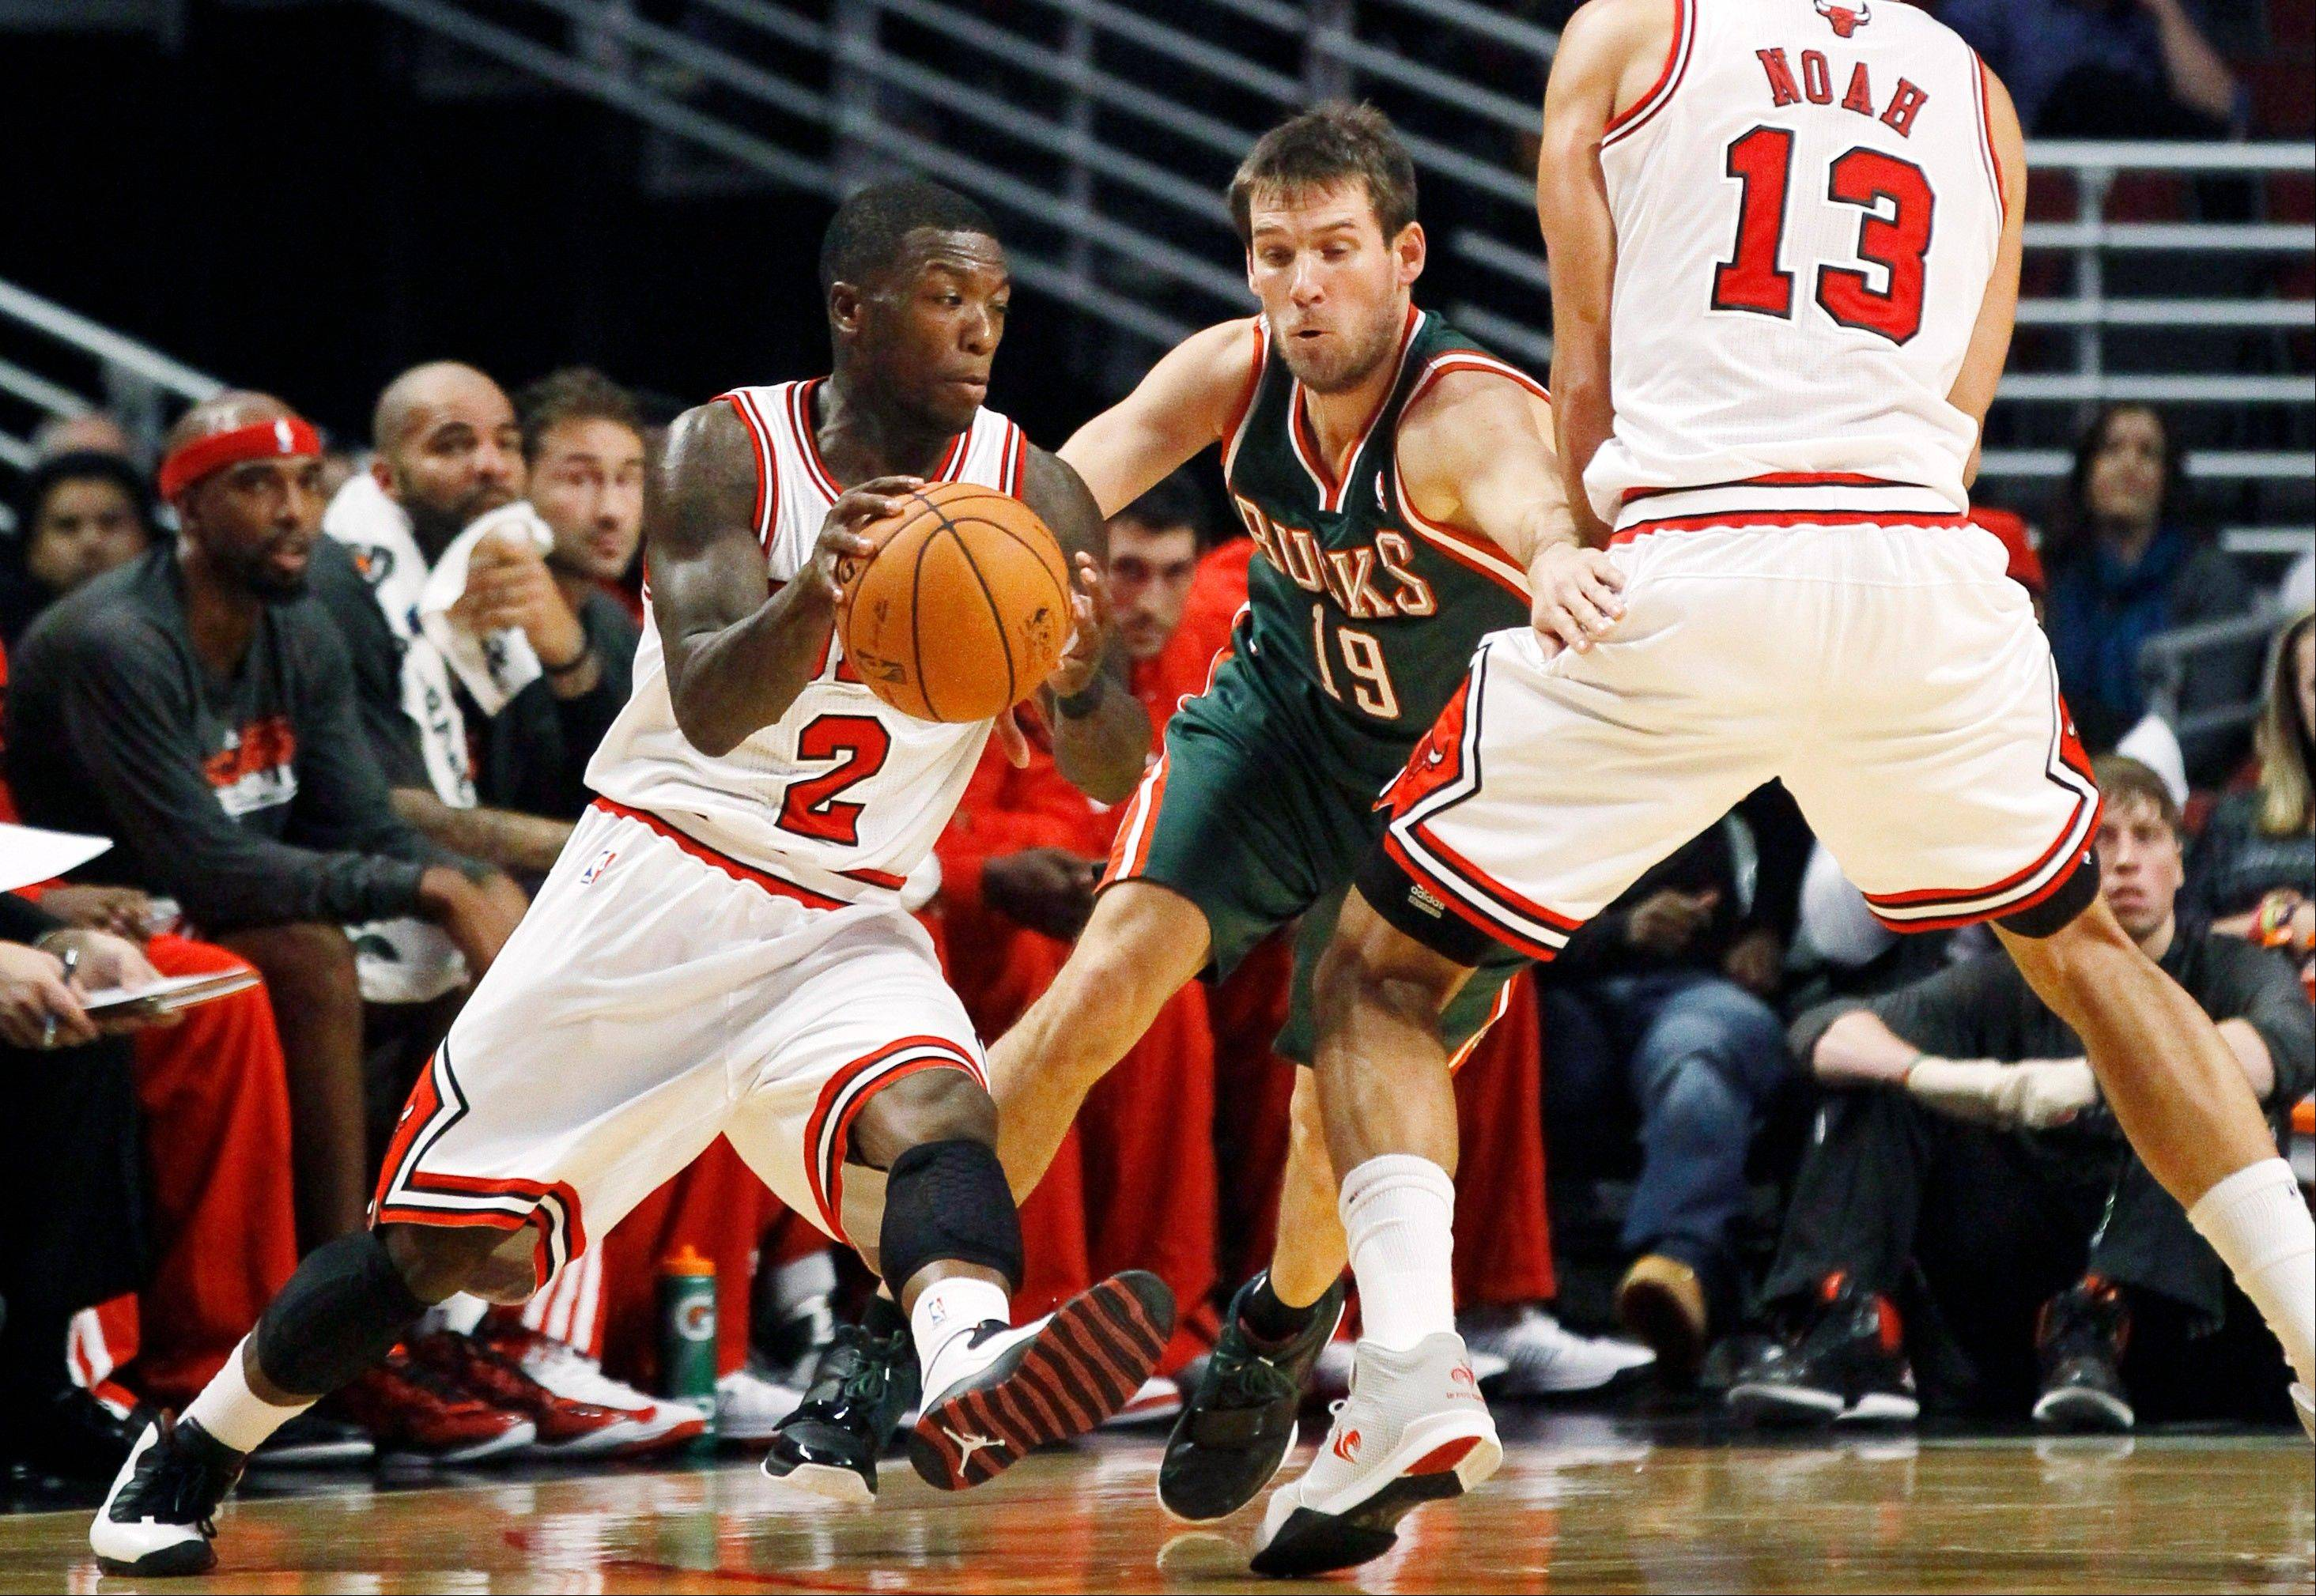 Bulls guard Nate Robinson moves around a screen set by center Joakim Noah as Milwaukee Bucks guard Beno Udrih tries to defend Tuesday during the first half at the United Center.